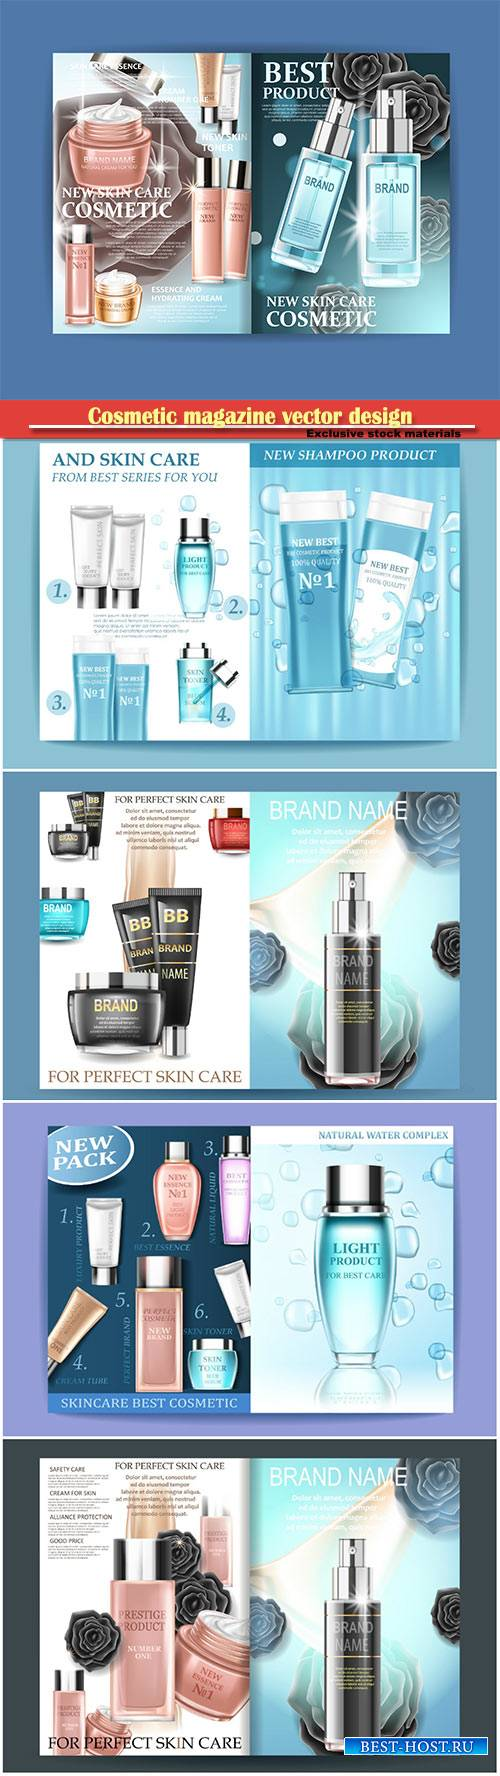 Cosmetic magazine vector design, best care, can be used for different projects